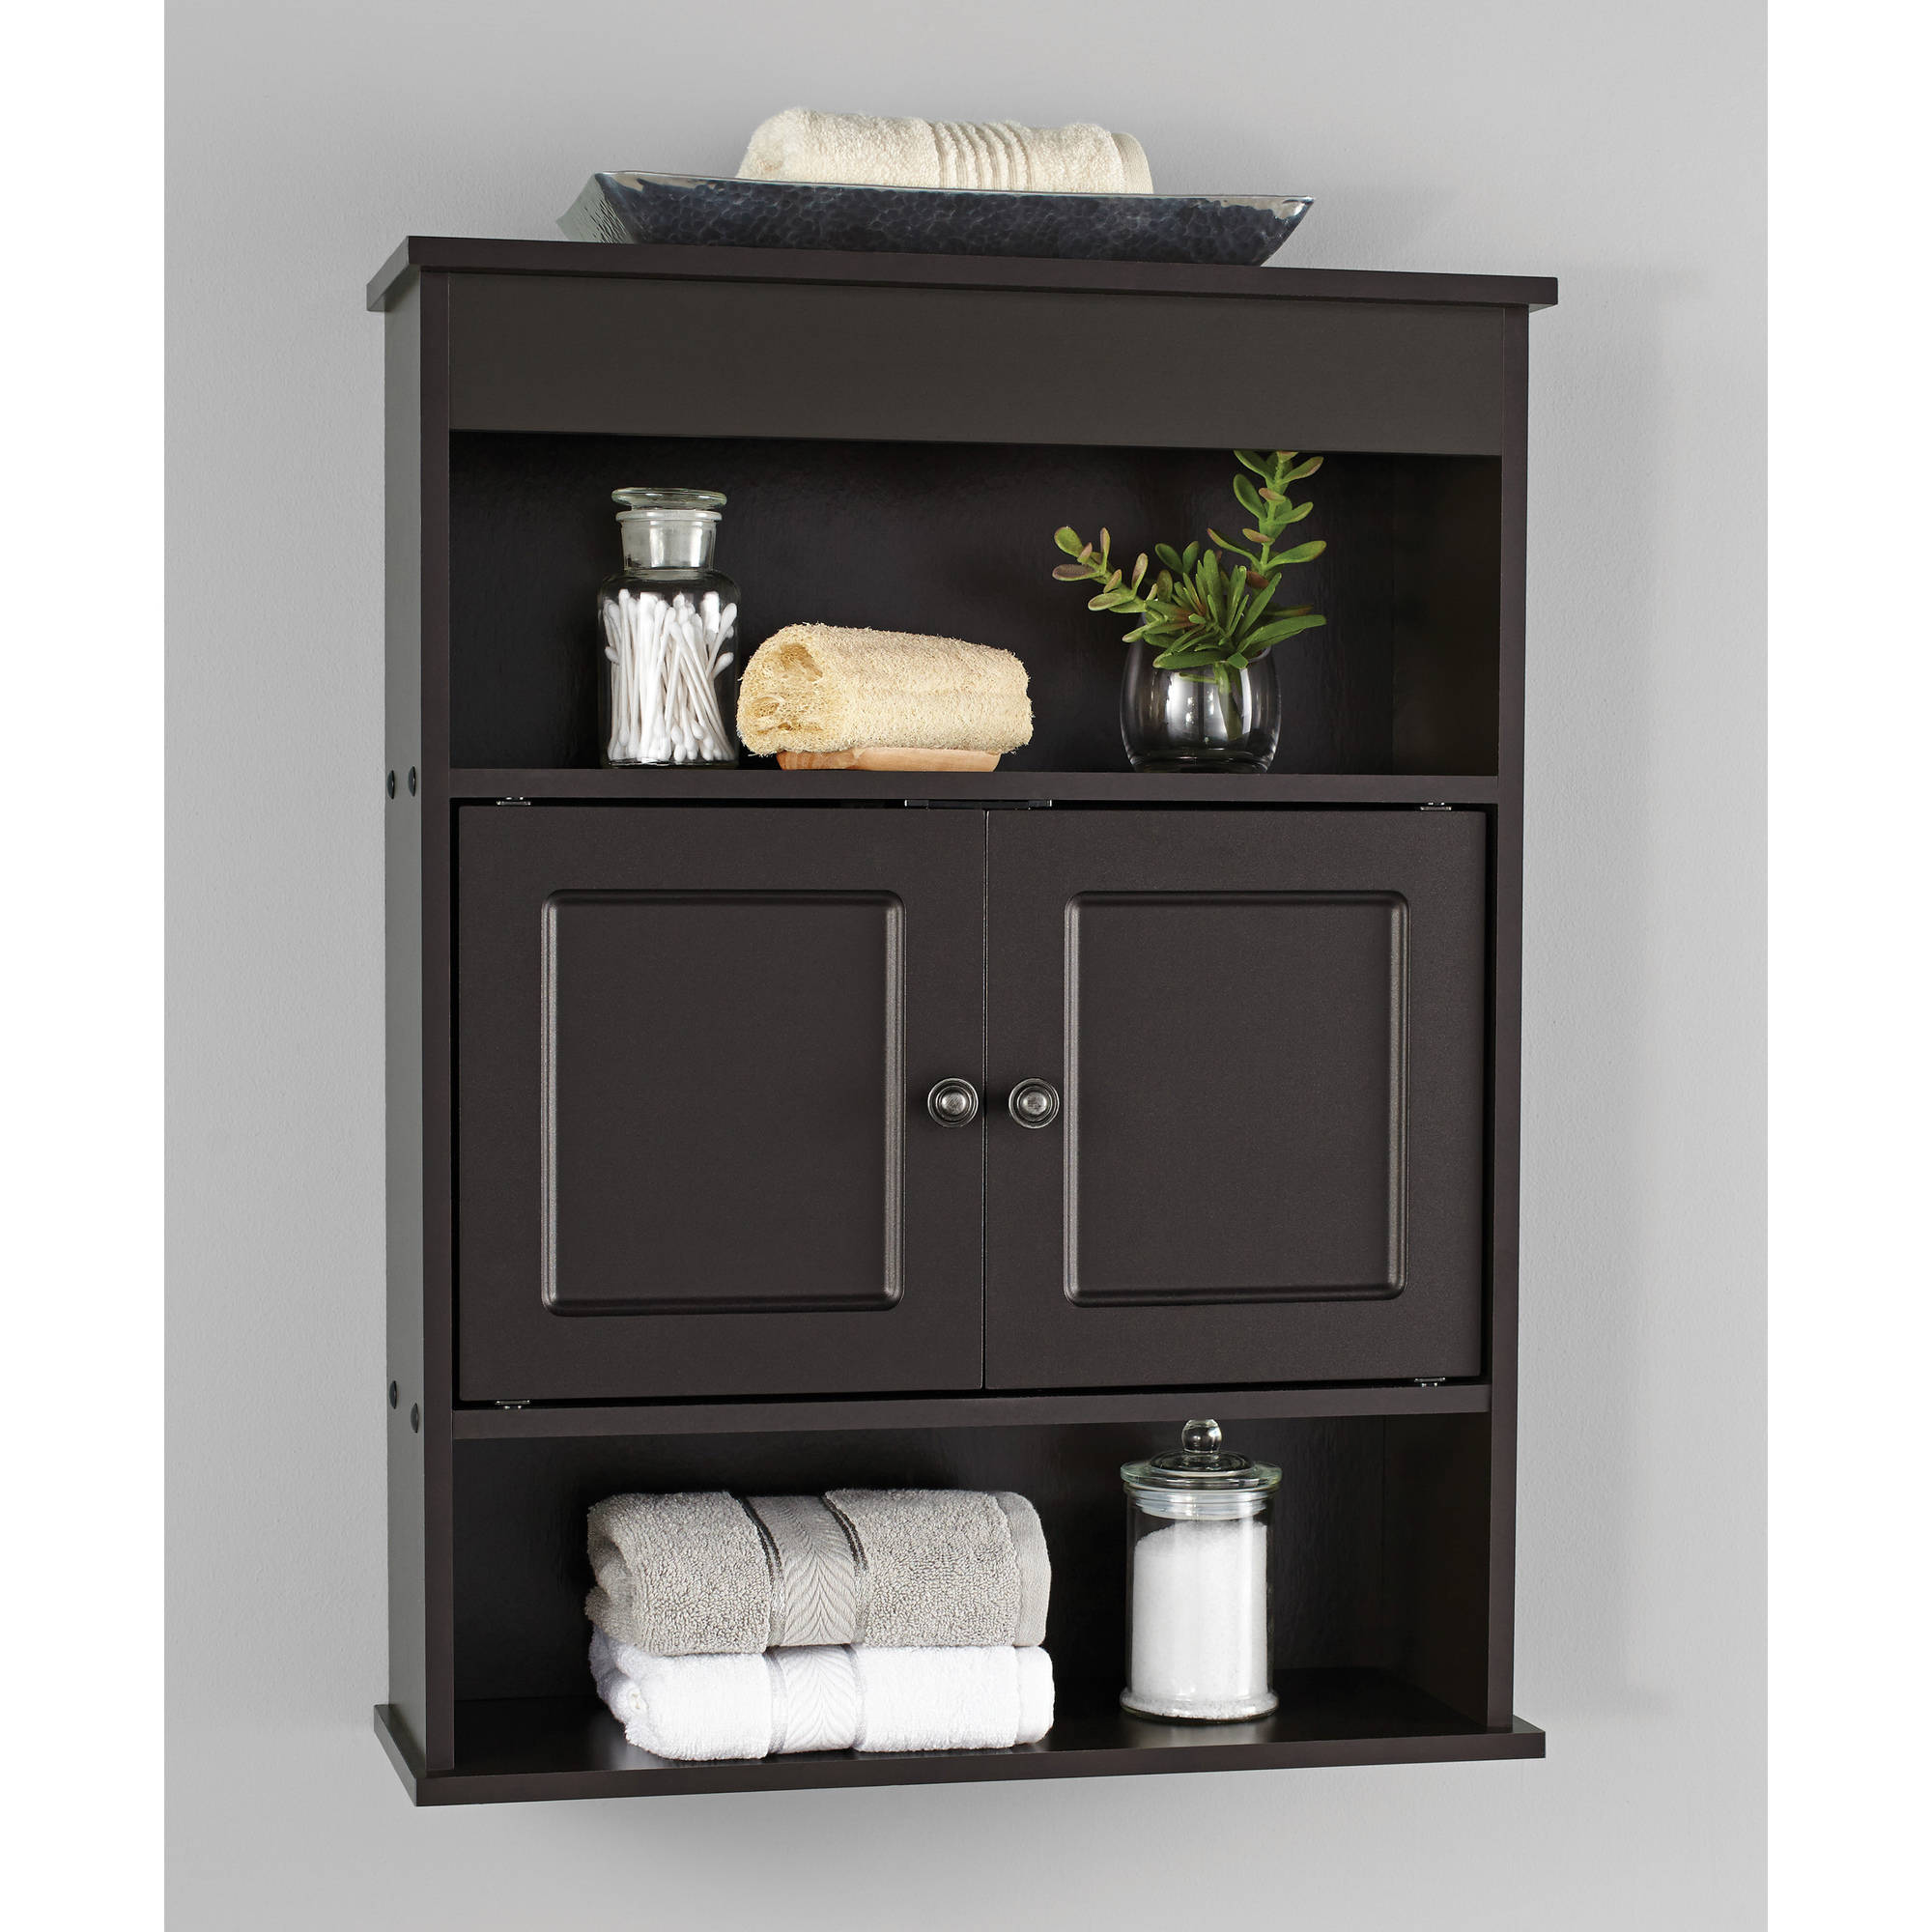 Charmant Chapter Bathroom Wall Cabinet, Espresso   Walmart.com